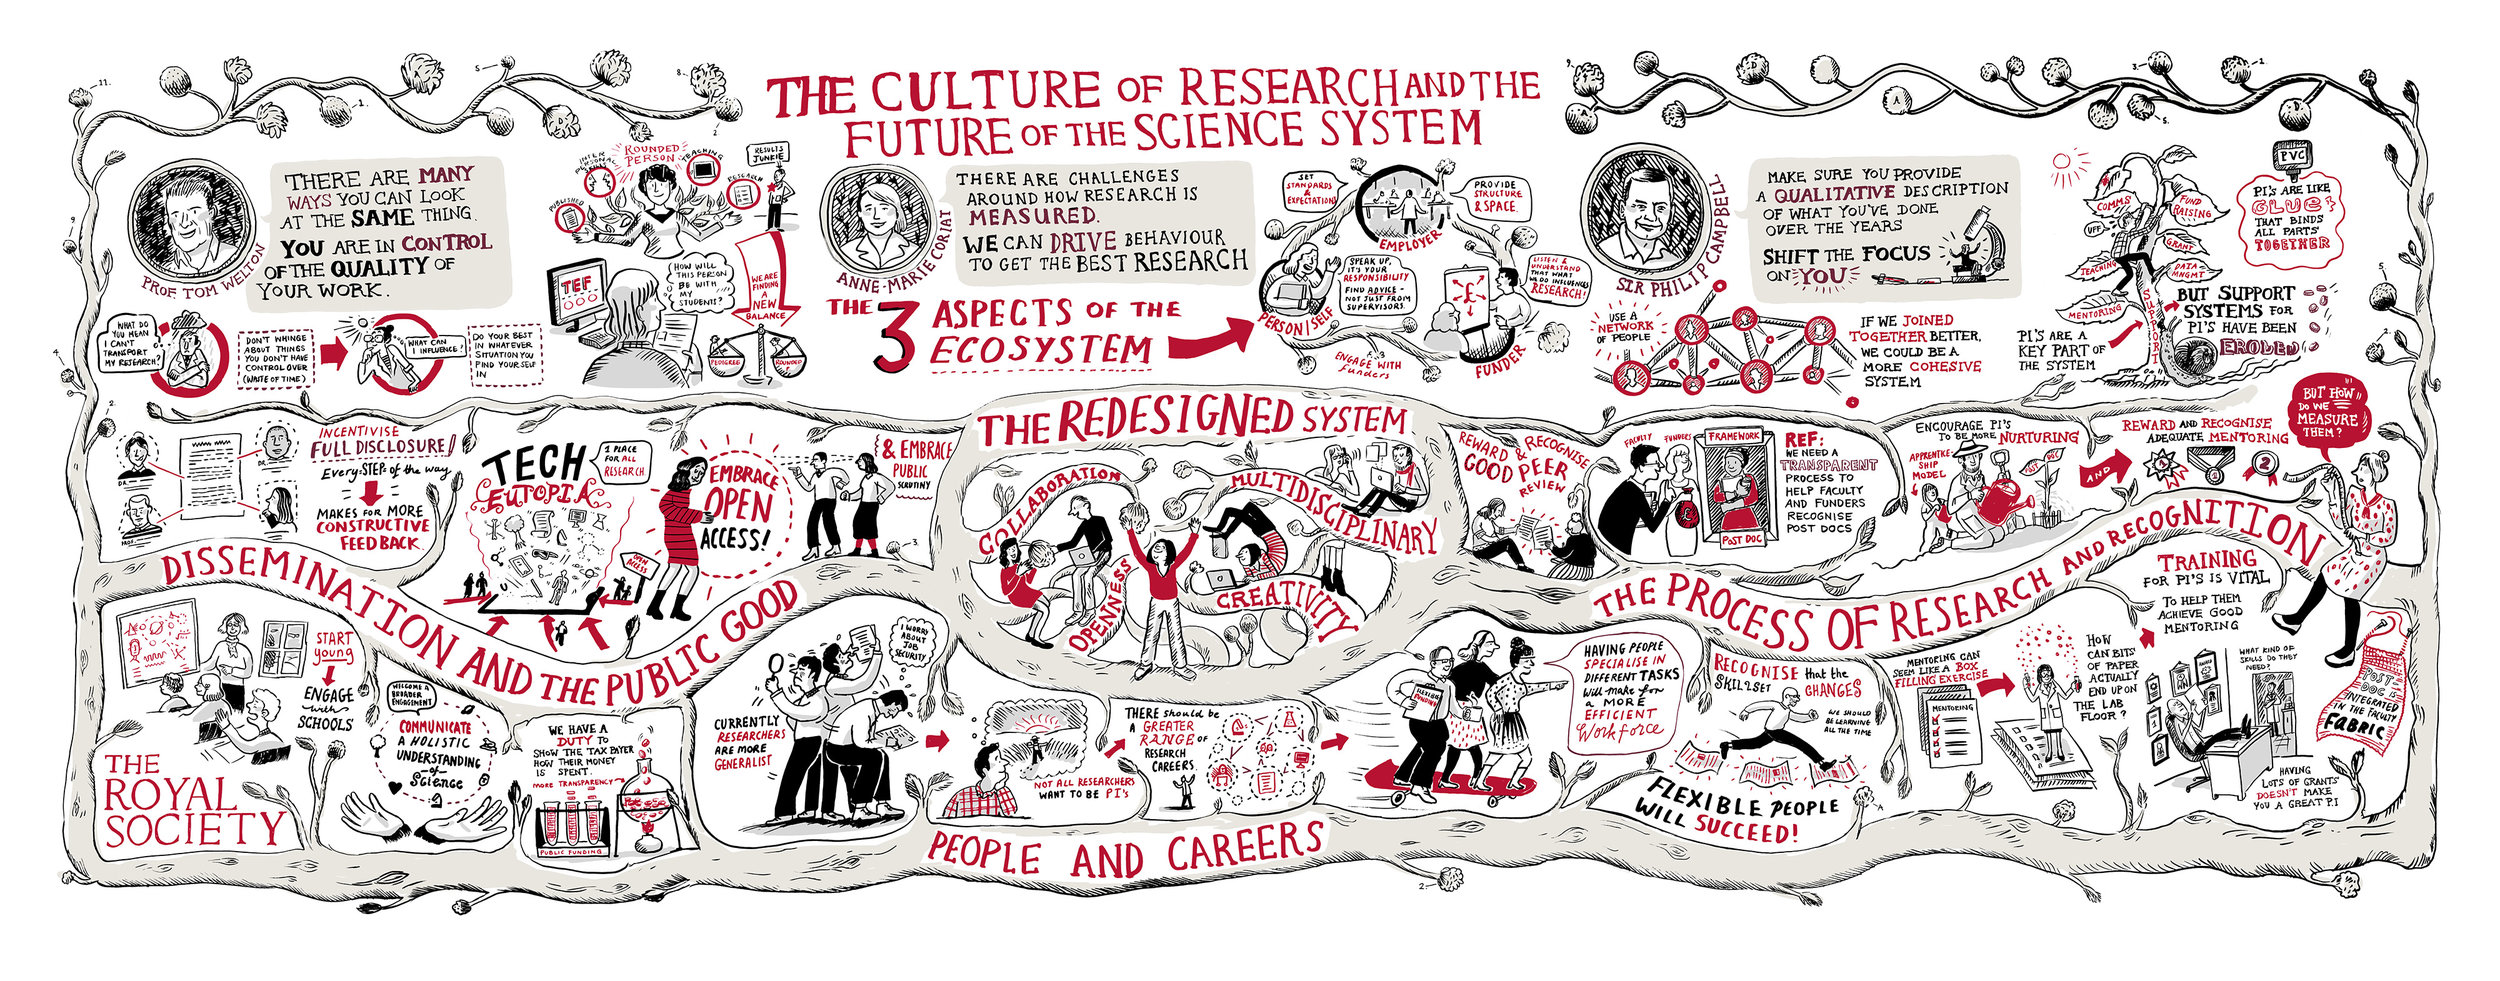 Scriberia scribing Royal Society Future of the science system